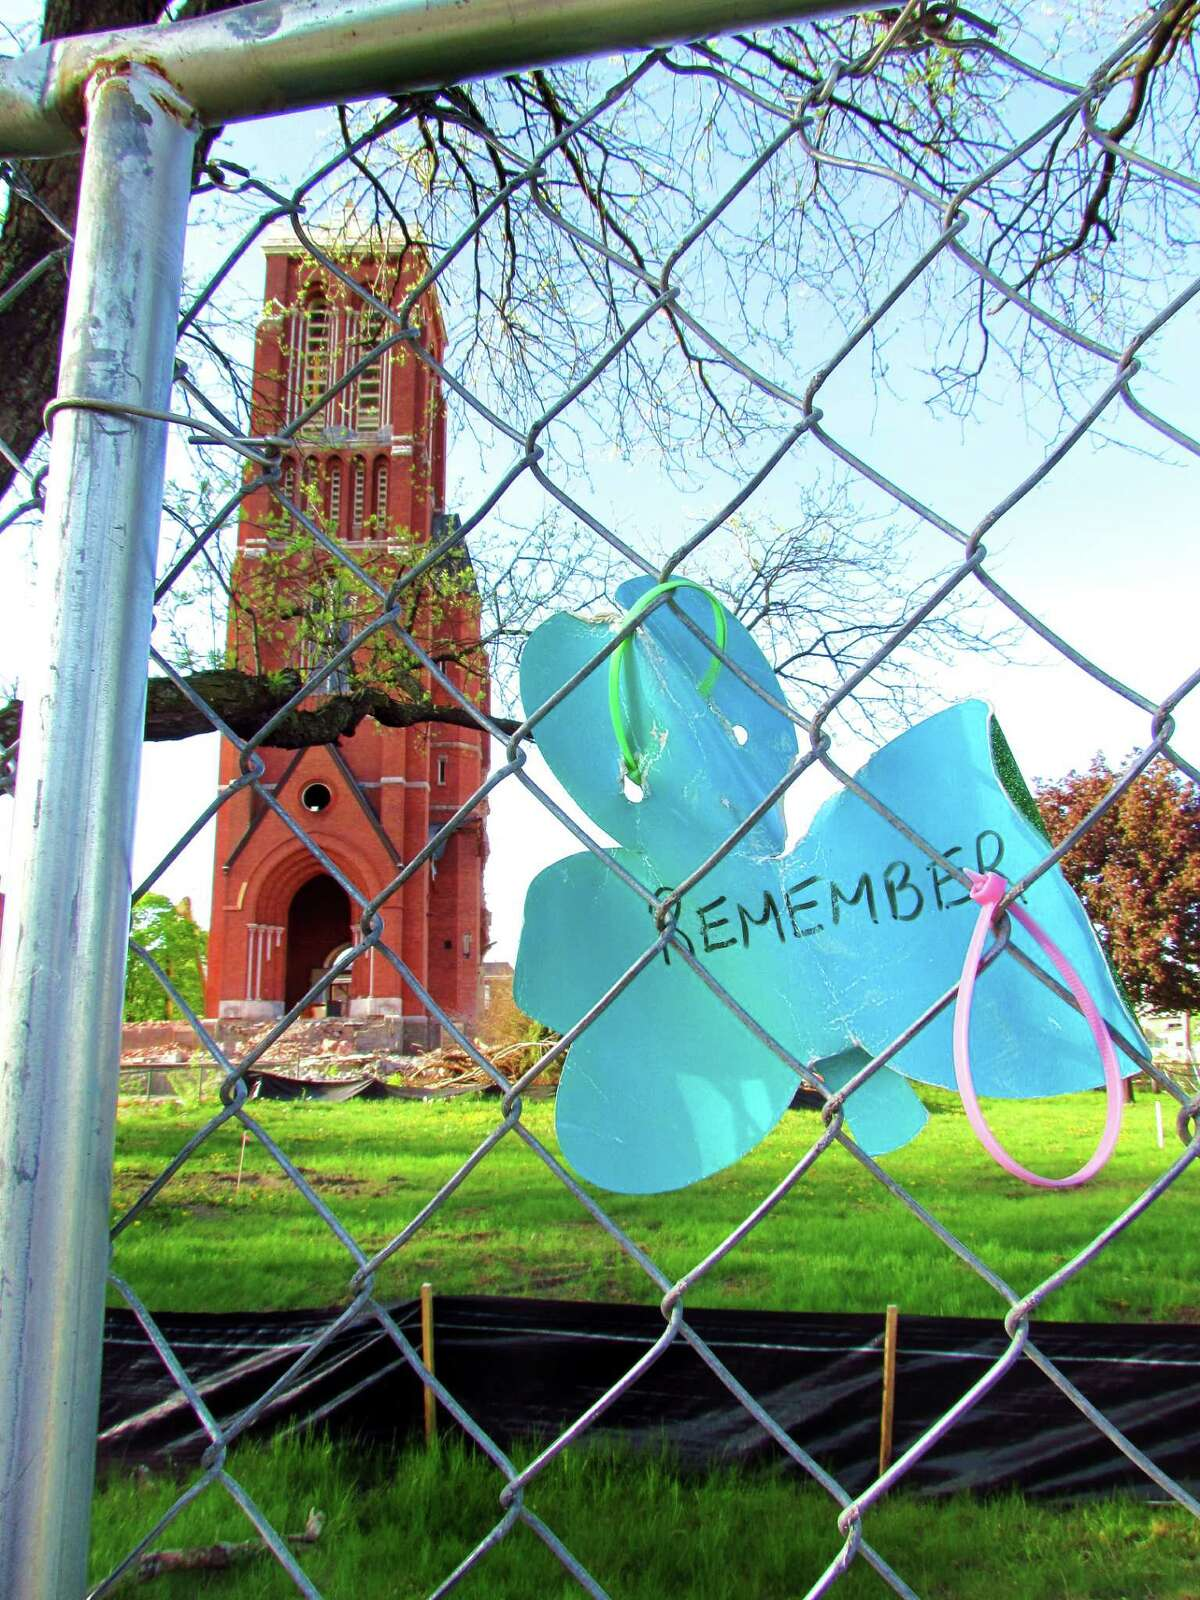 A sign hangs on a fence in front of the remains of the bell tower on St. Patrick's Church in Watervliet on Wednesday, May 8, 2013. (Photo courtesy of Ron Schubin)